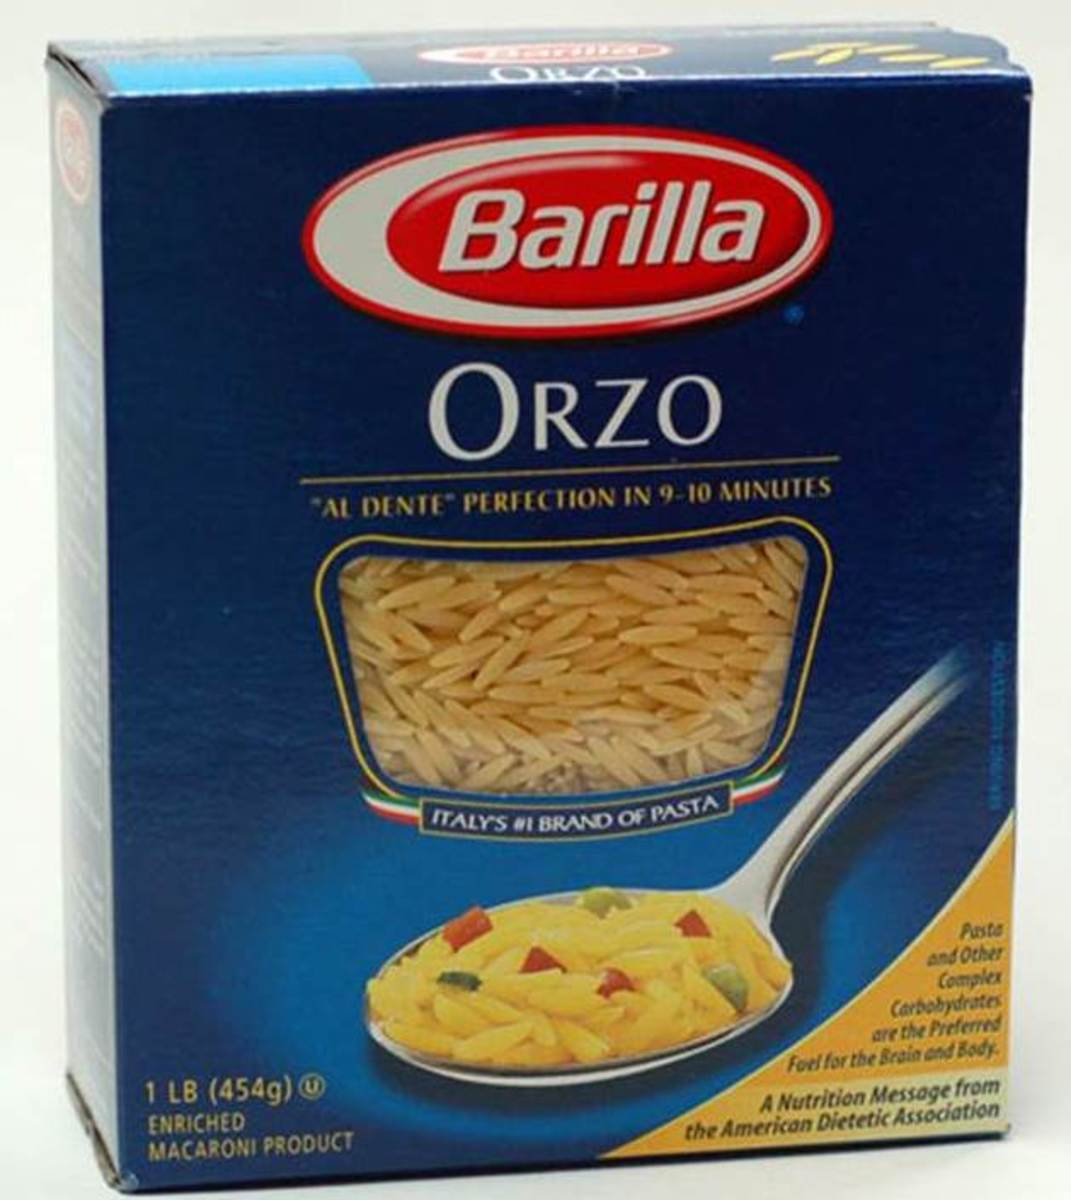 Orzo is a rice-shaped pasta that is easy to cook and easy to eat. Follow package directions.